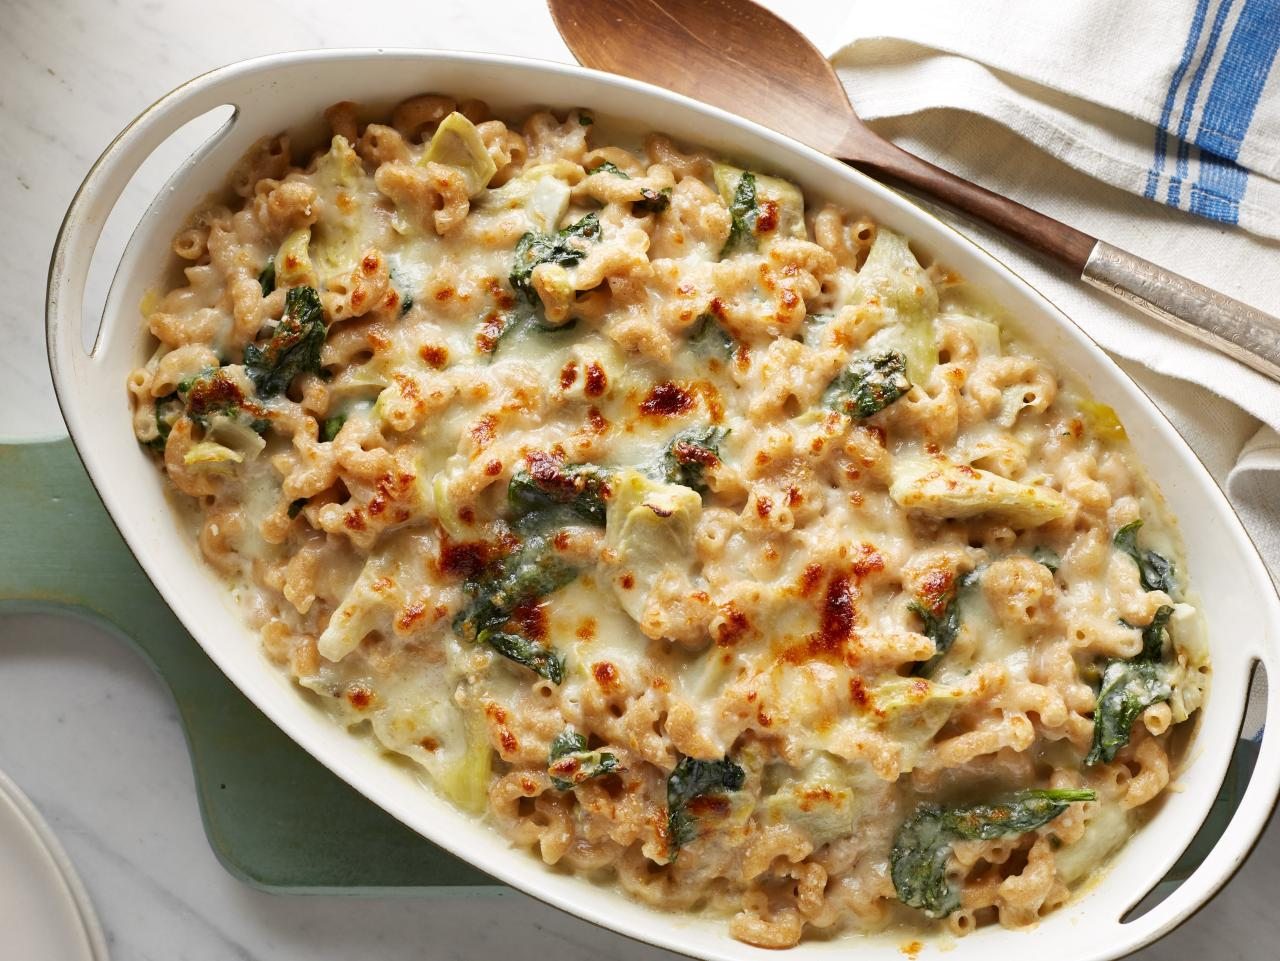 Spinach and Artichoke Mac and Cheese Recipe